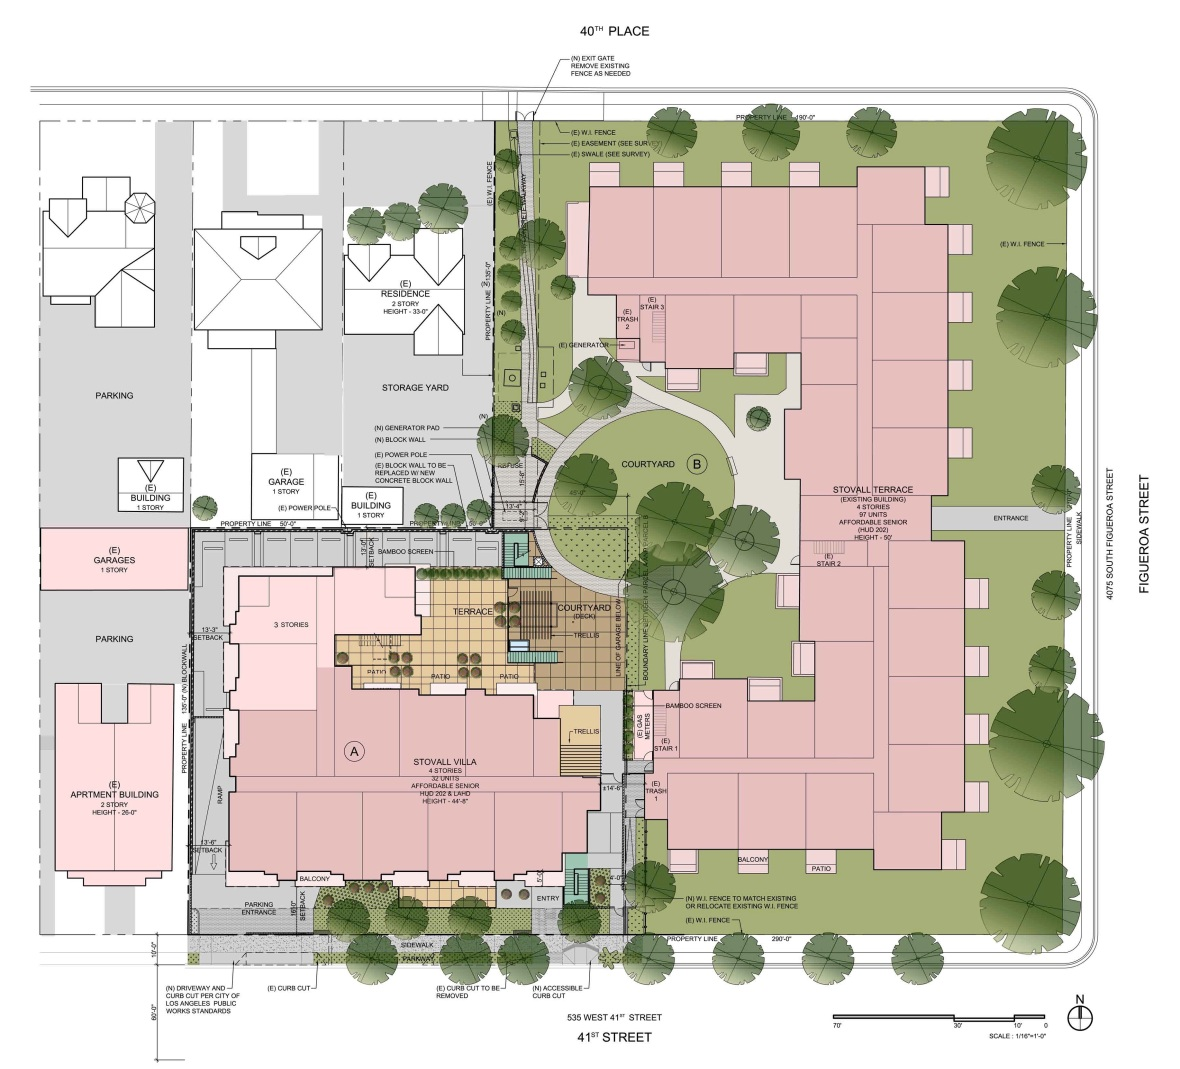 colored site plan24X36_061609